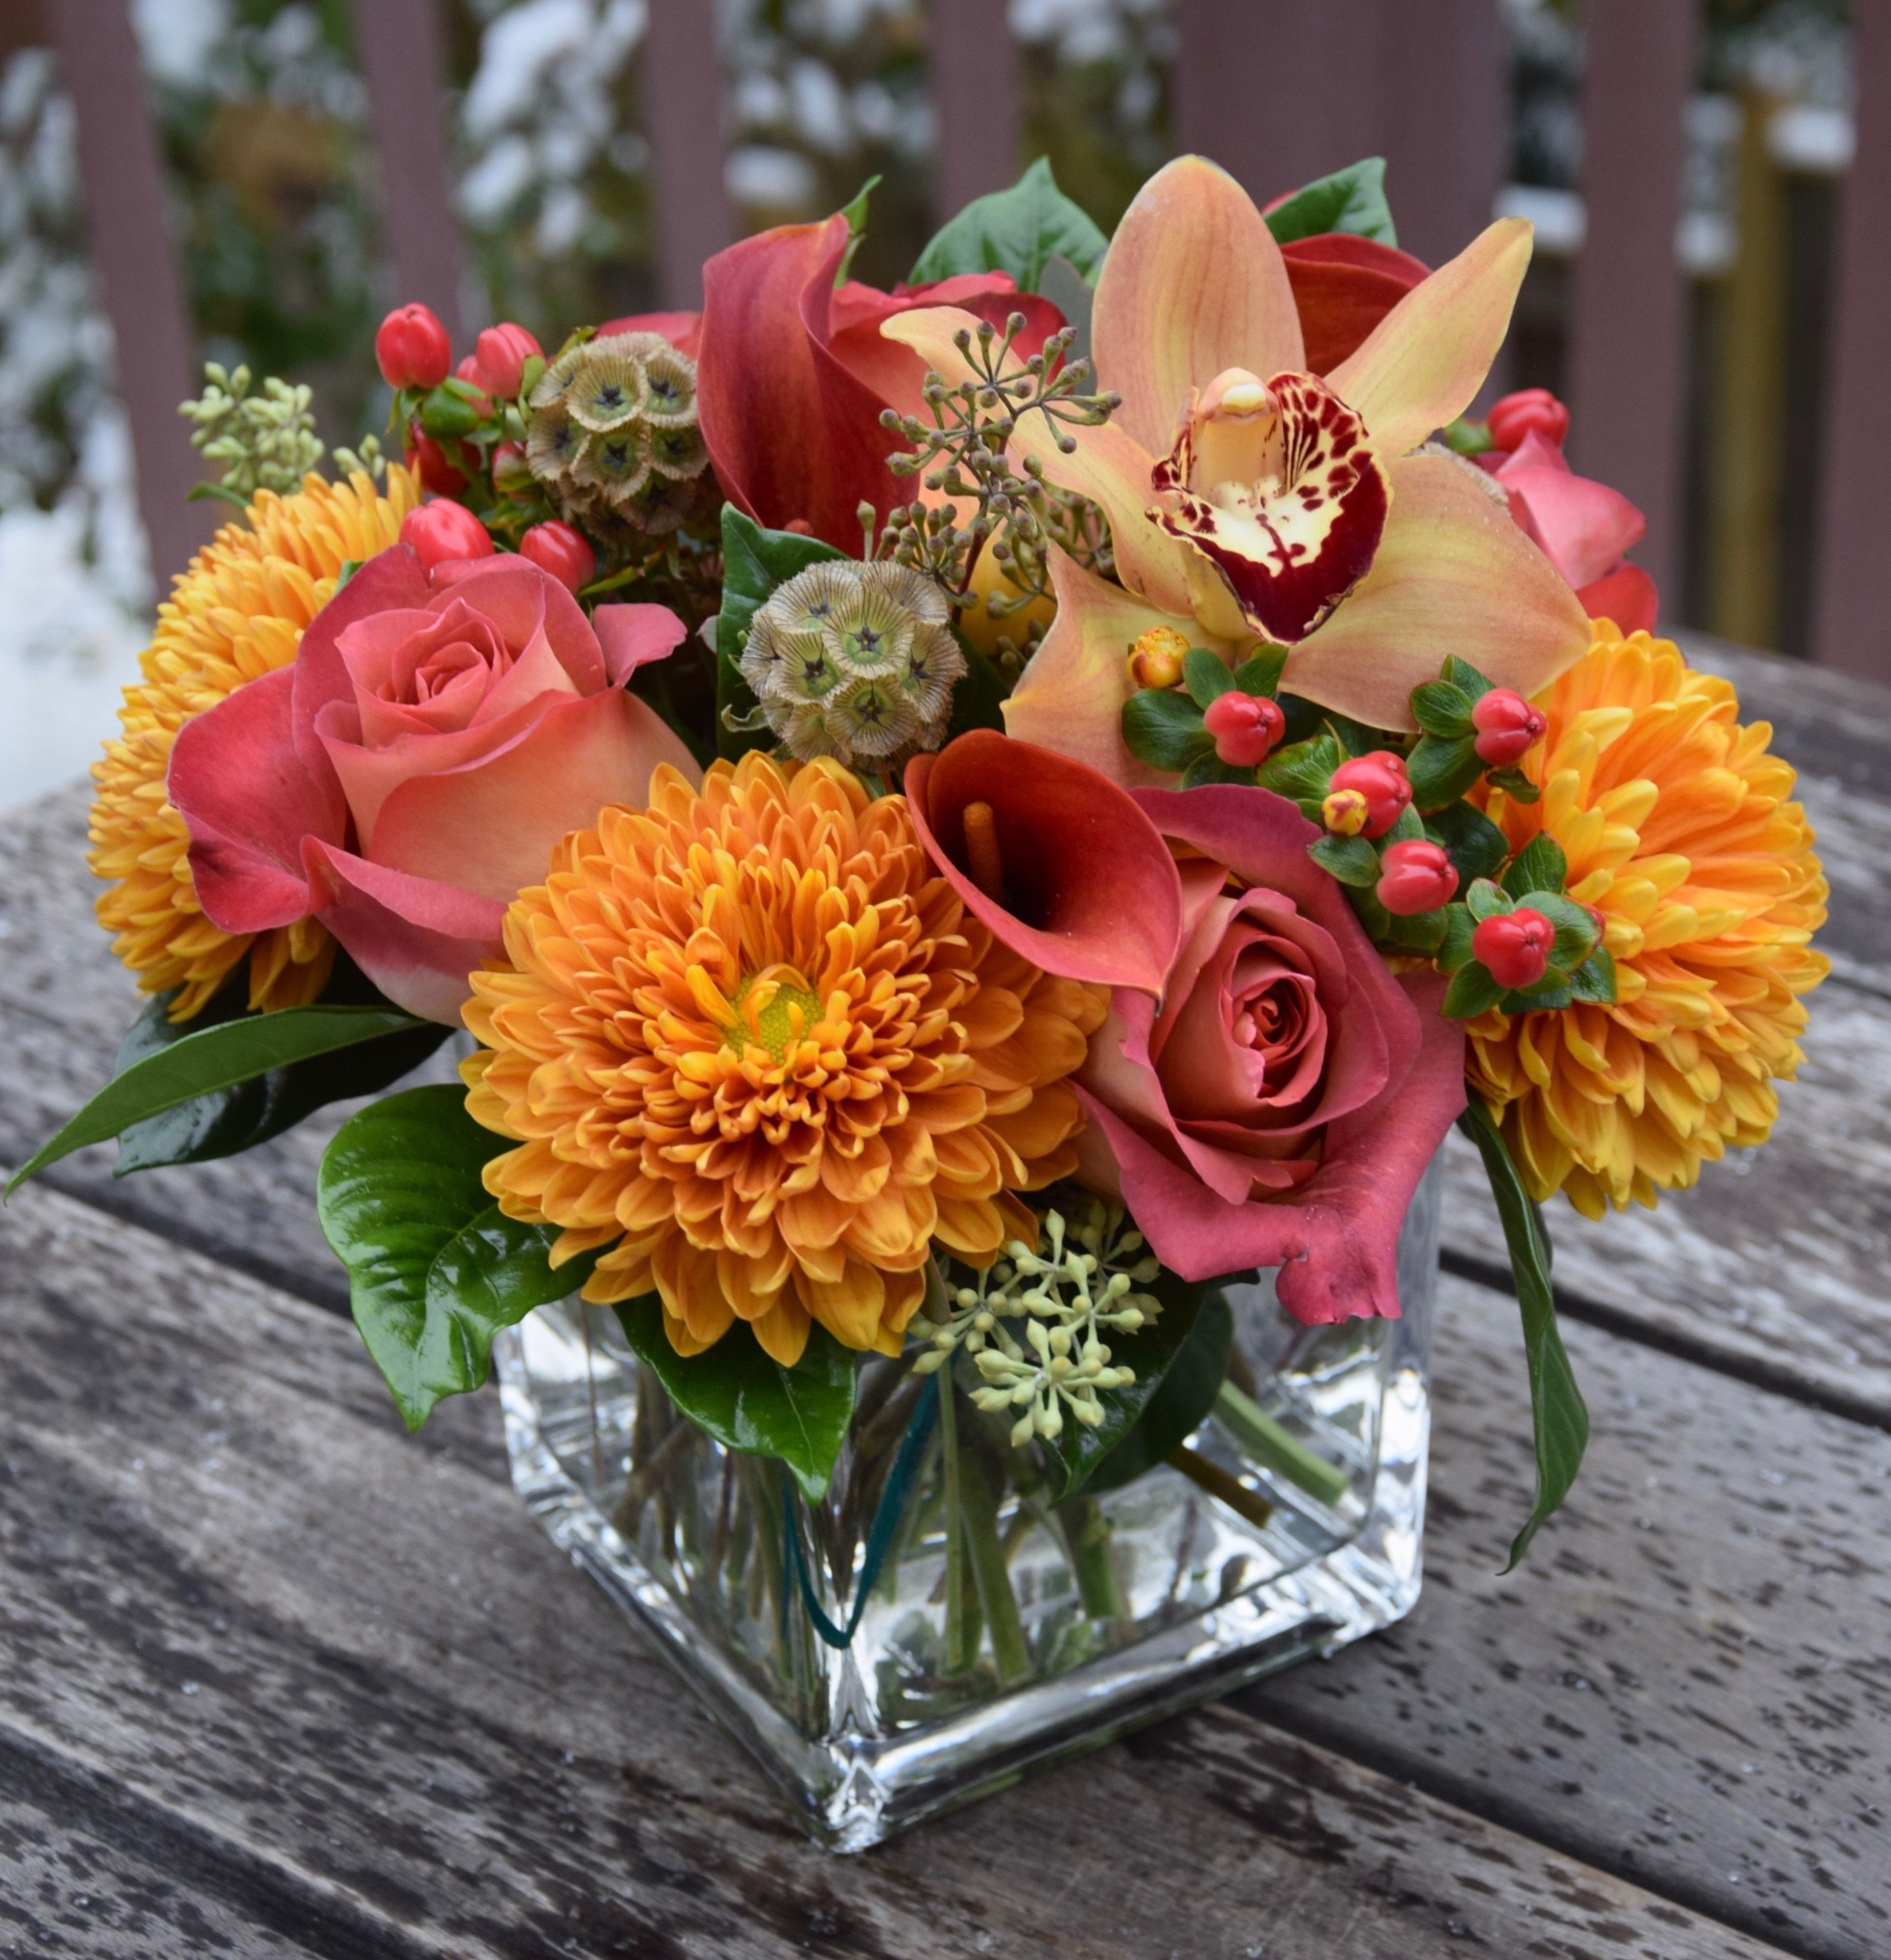 Flower Arrangement With Bright Bold Colored Flowers Coffee Break Roses Disbud Fresh Flowers Arrangements Fall Flower Arrangements Flower Arrangements Simple